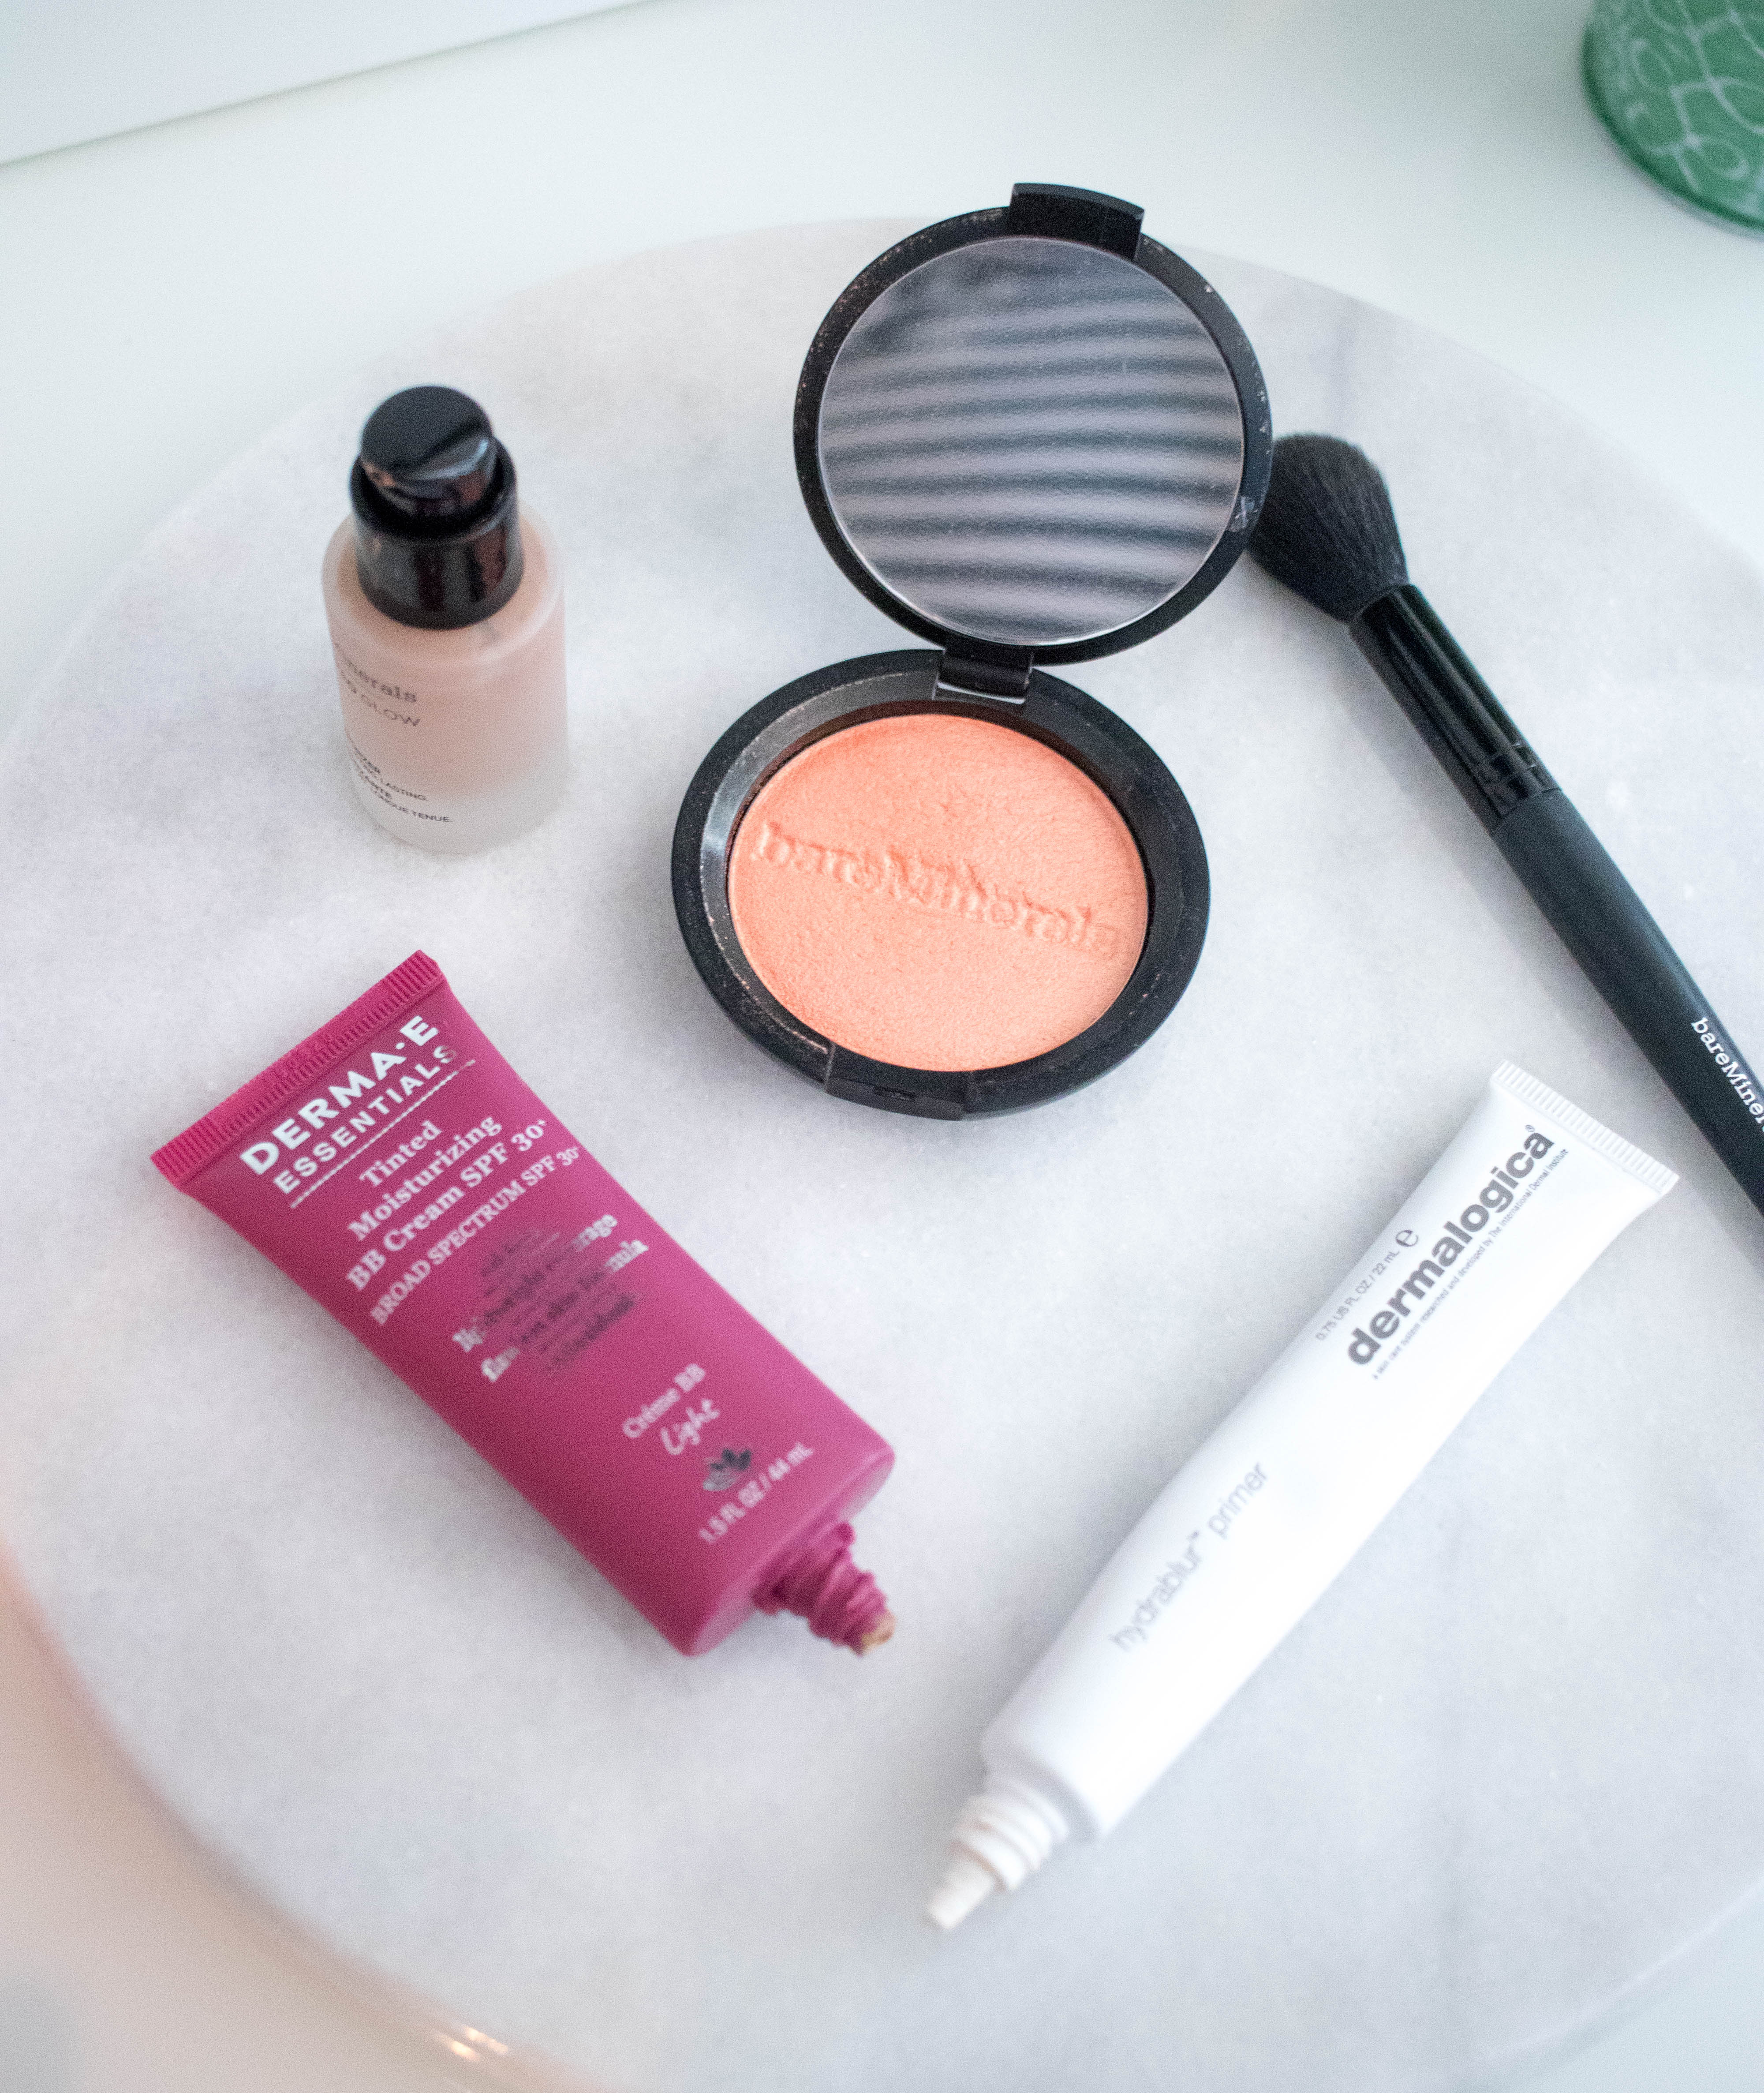 favorite summer makeup products clean beauty favorites #cleanbeauty #dermae #bareminerals